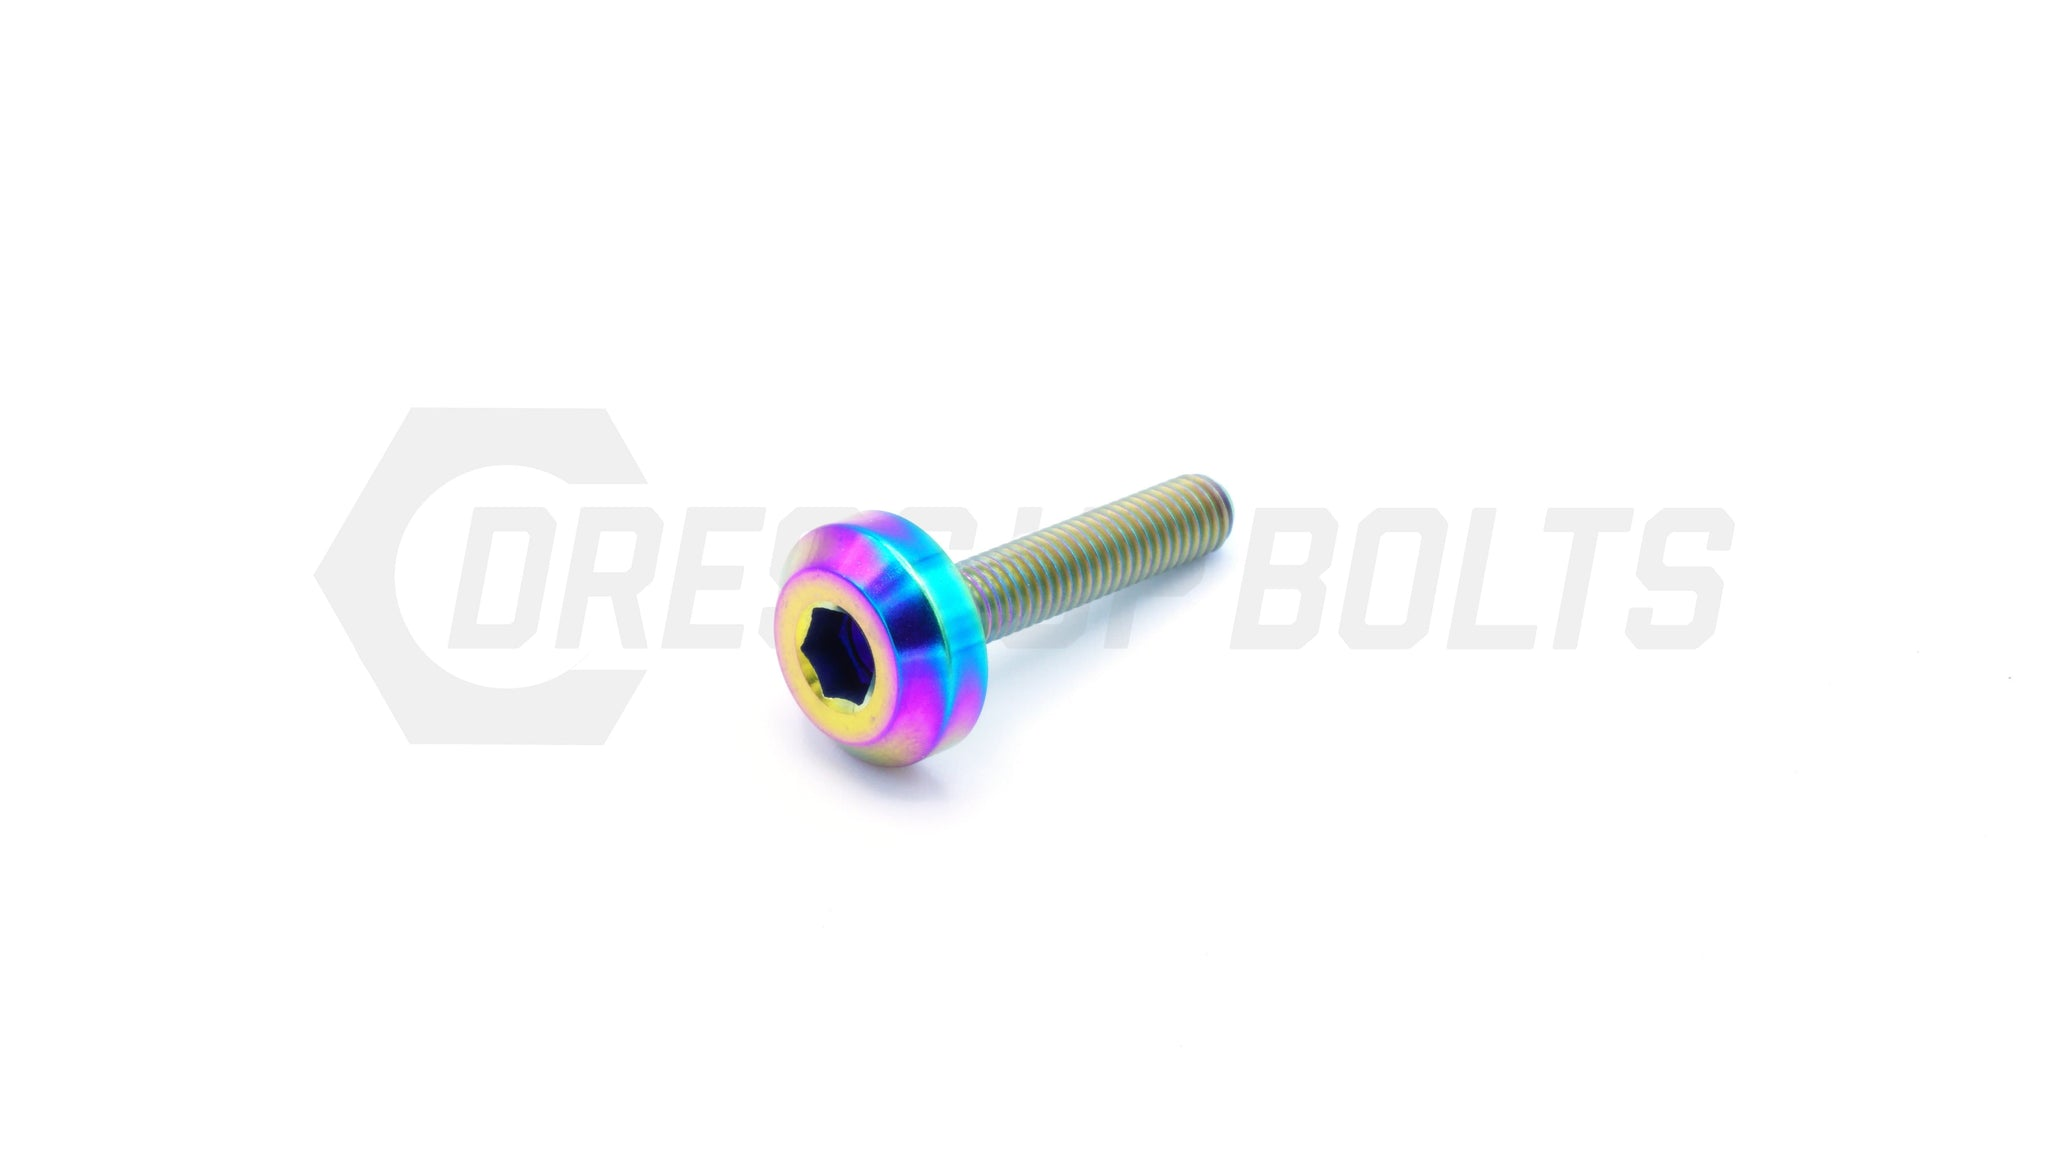 M5 x .8 x 25mm Titanium Motor Head Bolt by Dress Up Bolts - DressUpBolts.com